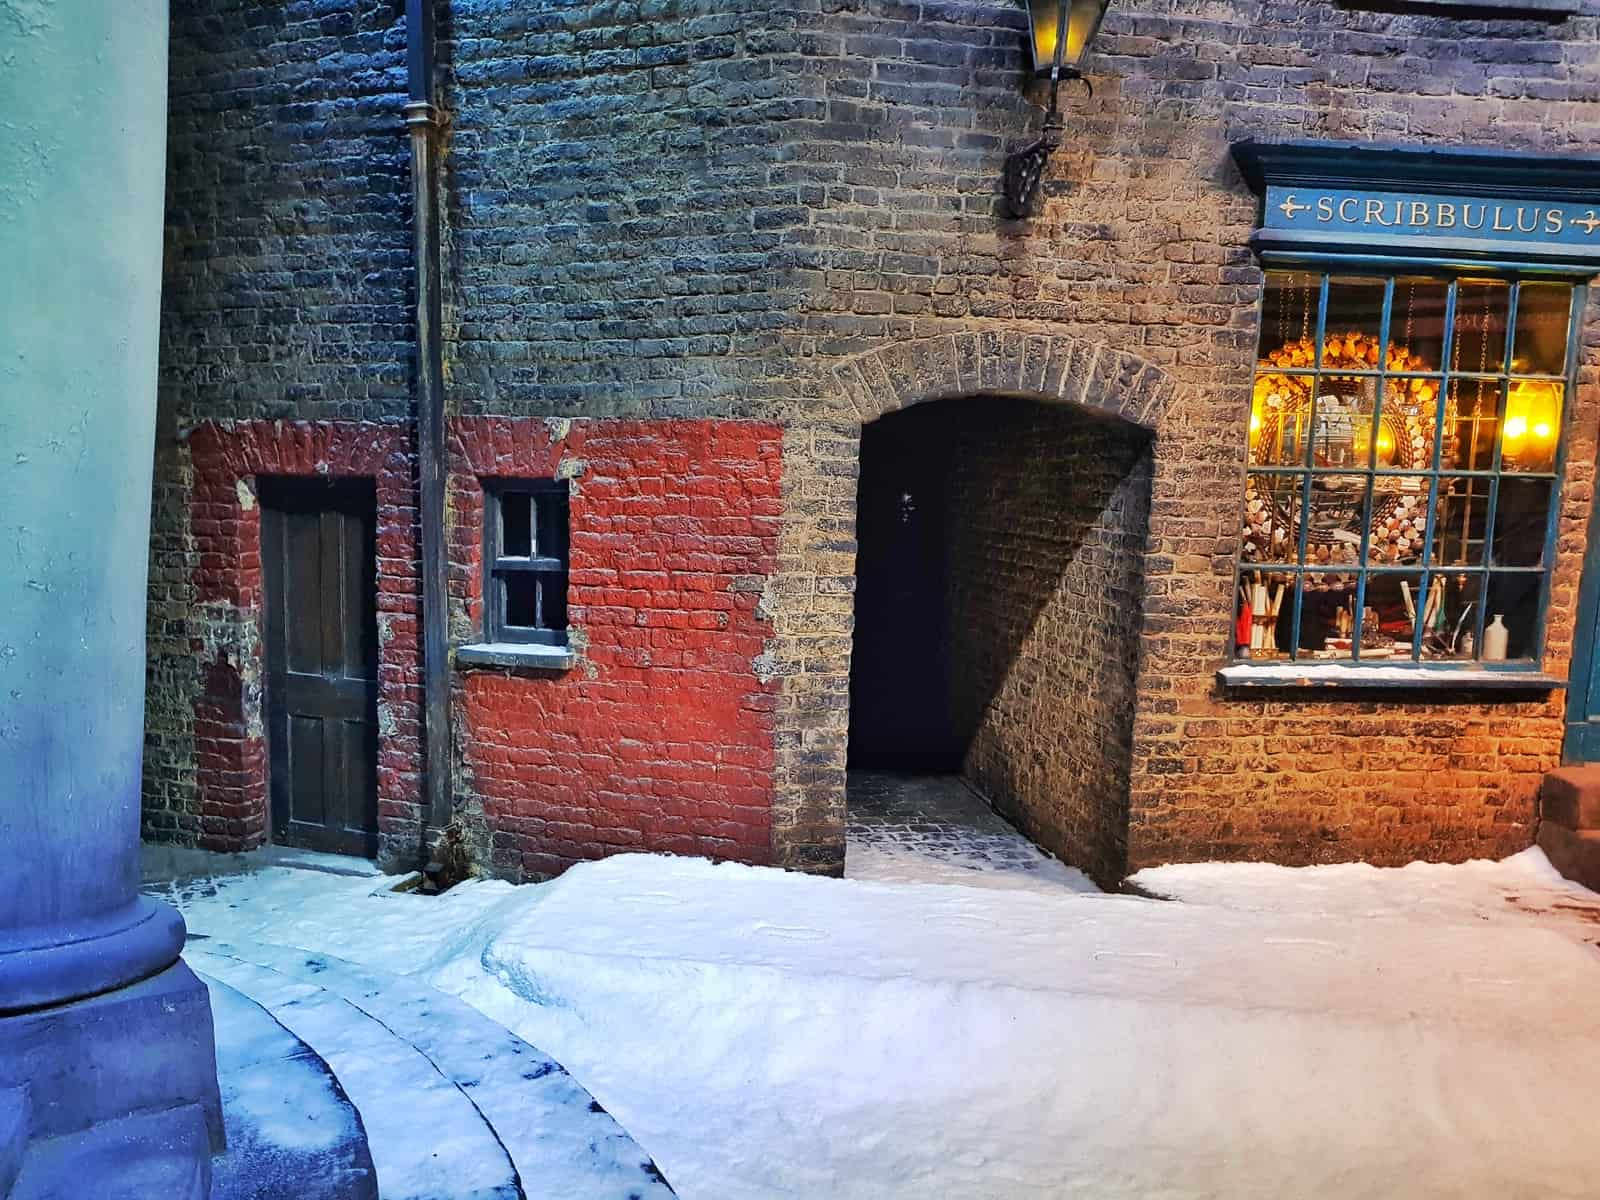 building on diagon alley with footprints in the snow outside